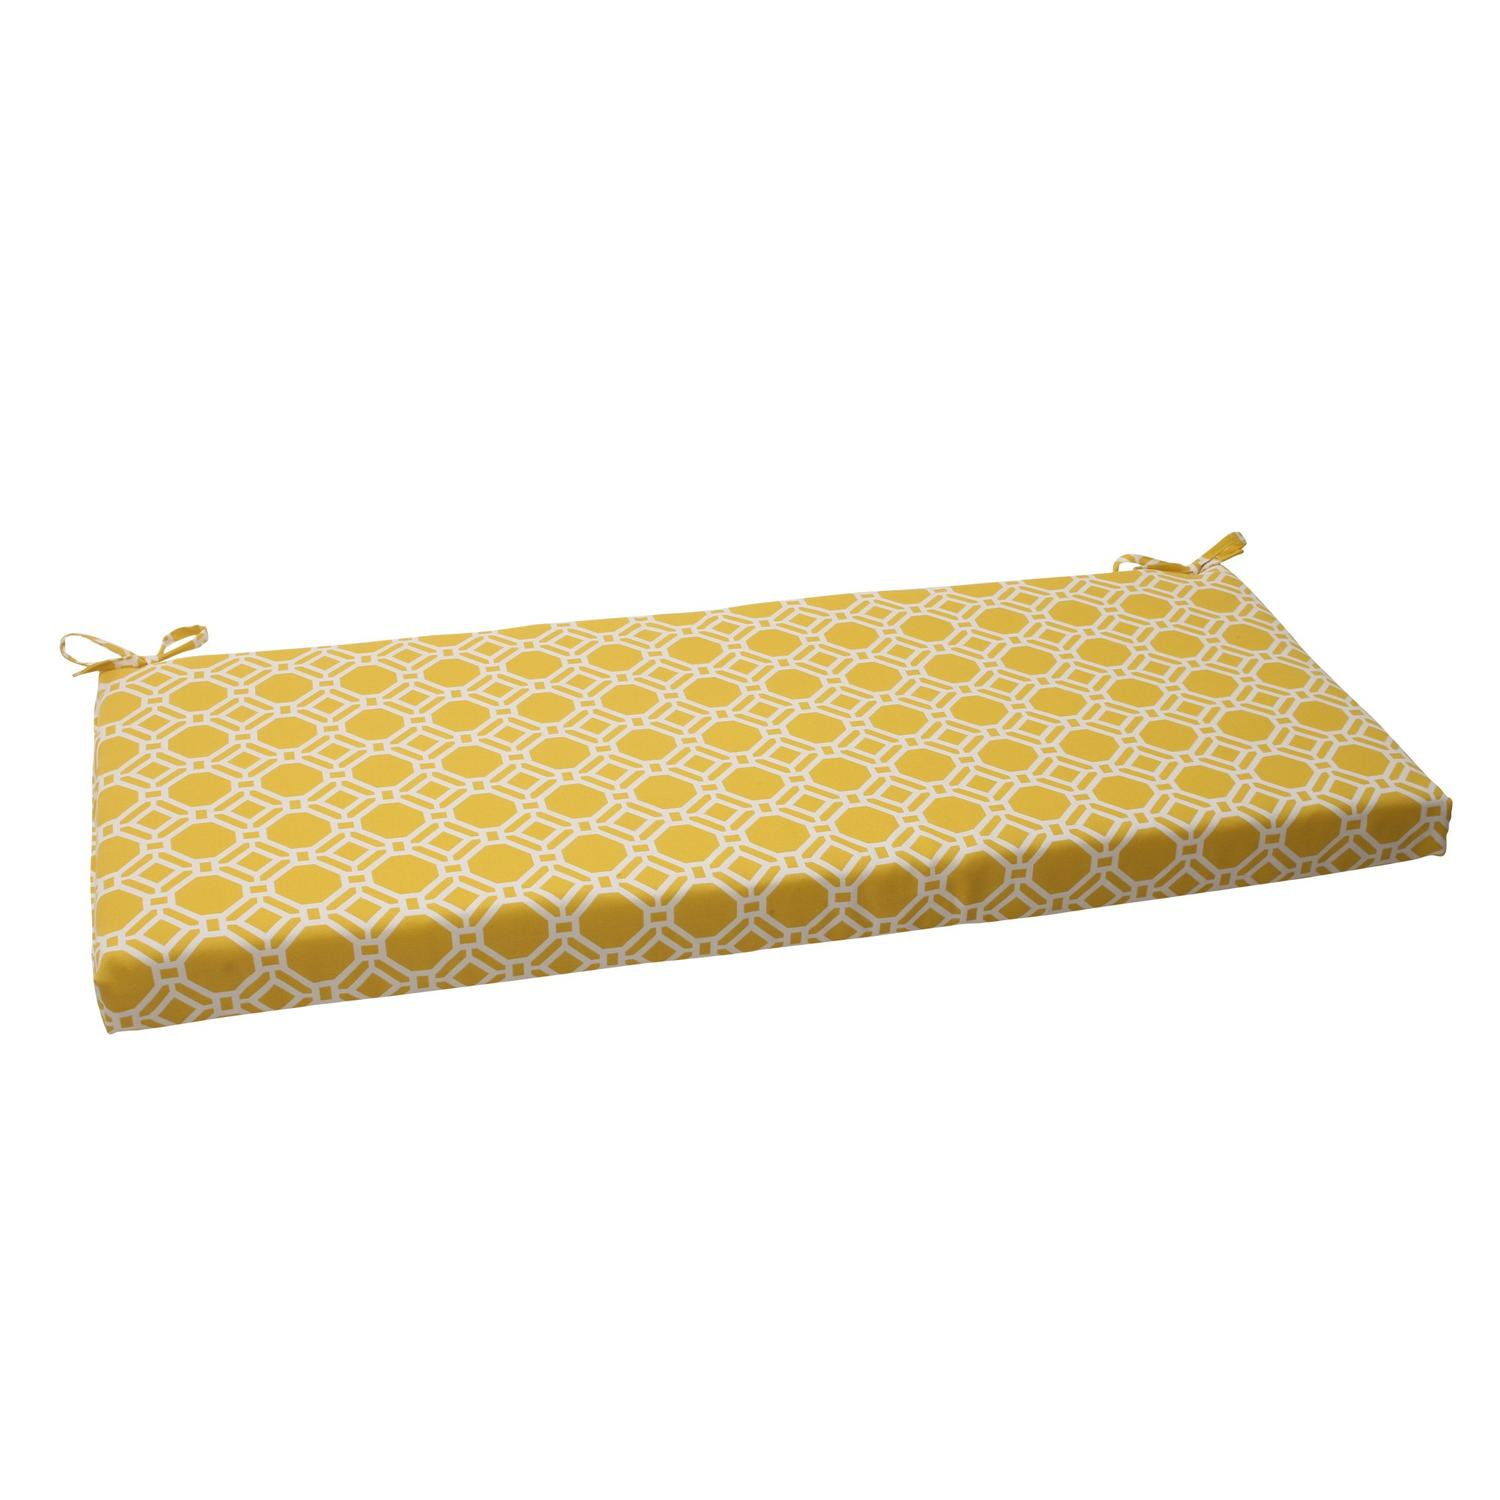 "45"" Yellow & White Octagonal Chain Outdoor Patio Furniture Bench Seat Cushion"